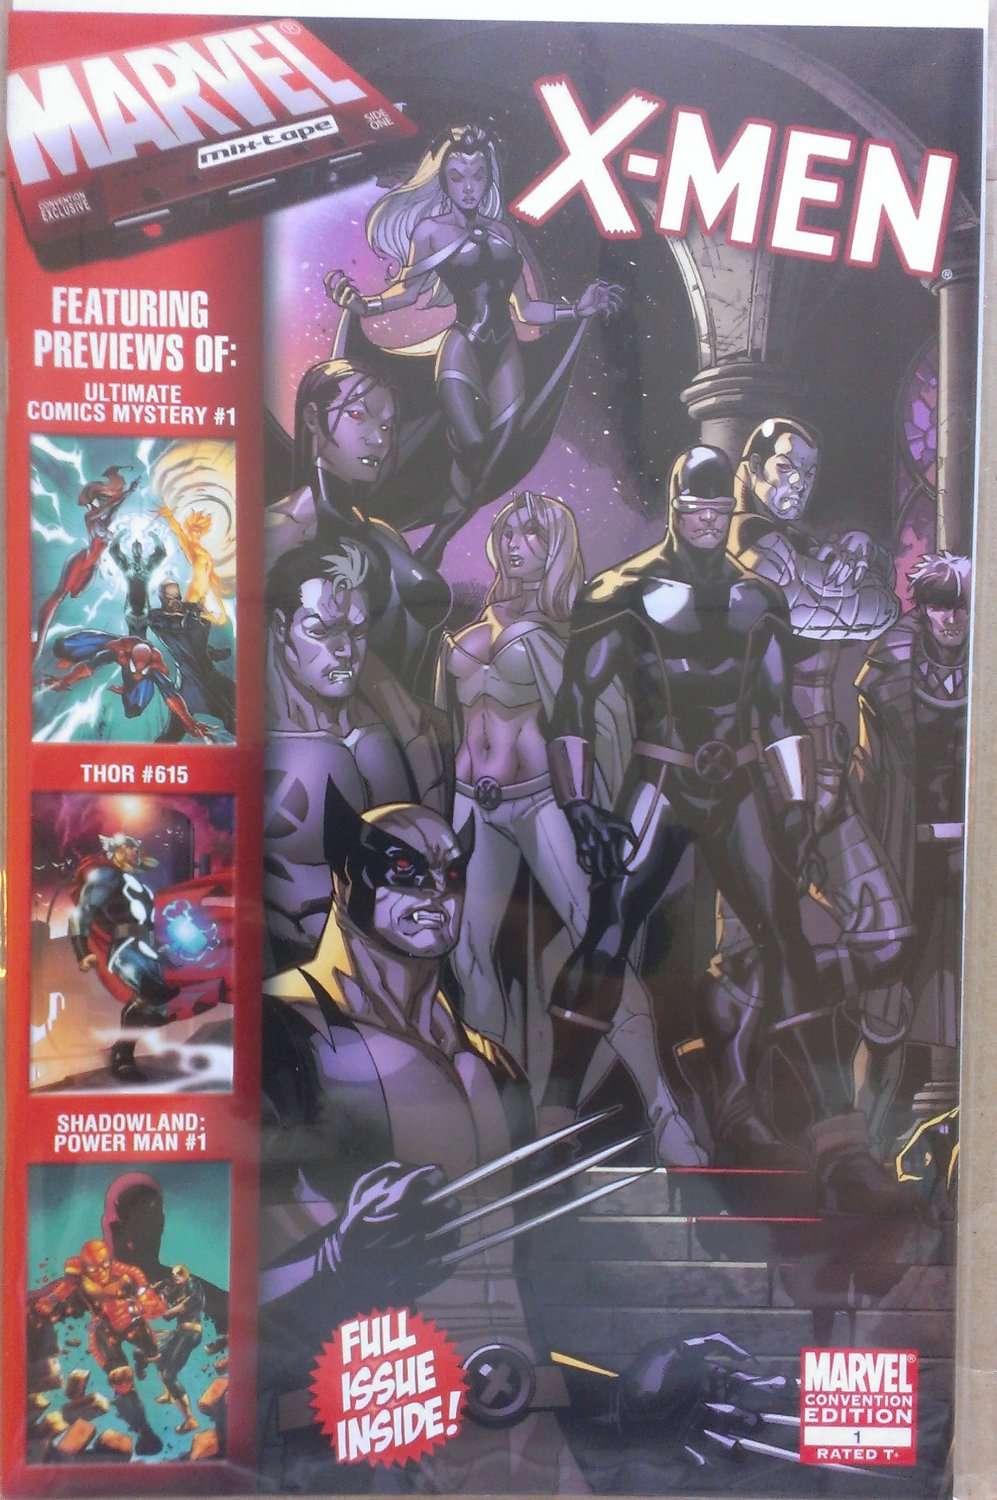 Marvel Mix-Tape: FanExpo Canada (FEC) 2010 # 1 Convention Edition (X-Men # 1 cover)